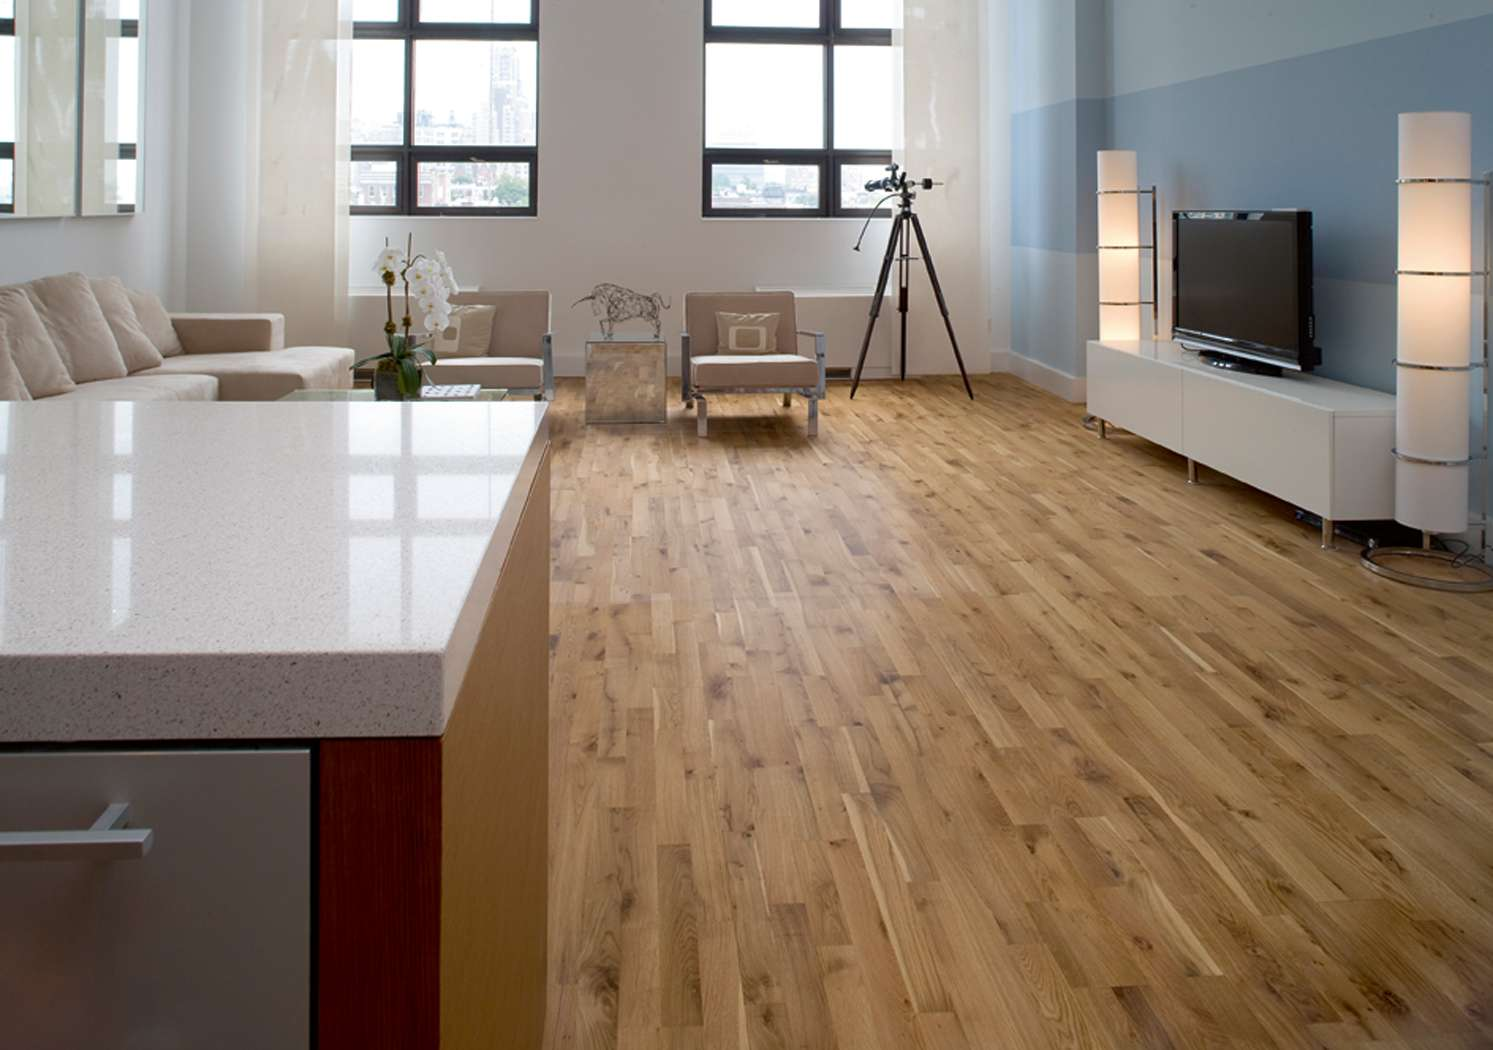 Image of: engineered wood floors house